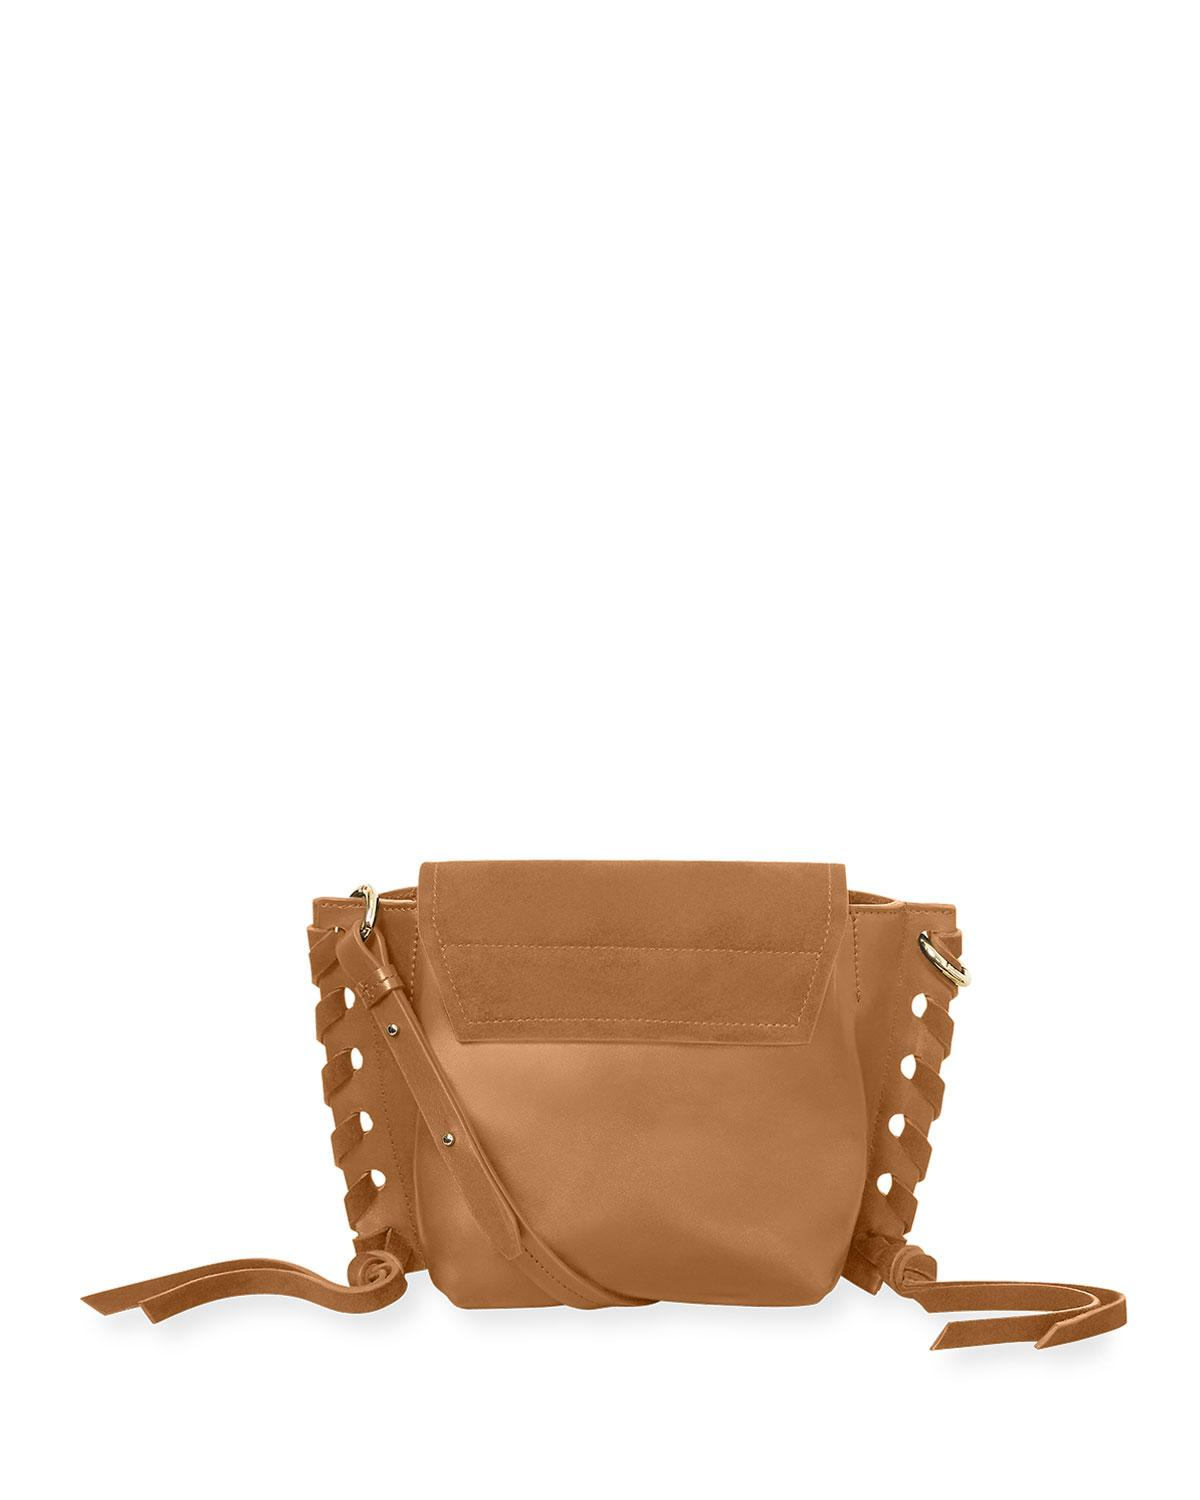 18032cdd6559 Lyst - Isabel Marant Kleny Suede And Leather Crossbody Bag in Brown - Save  36%